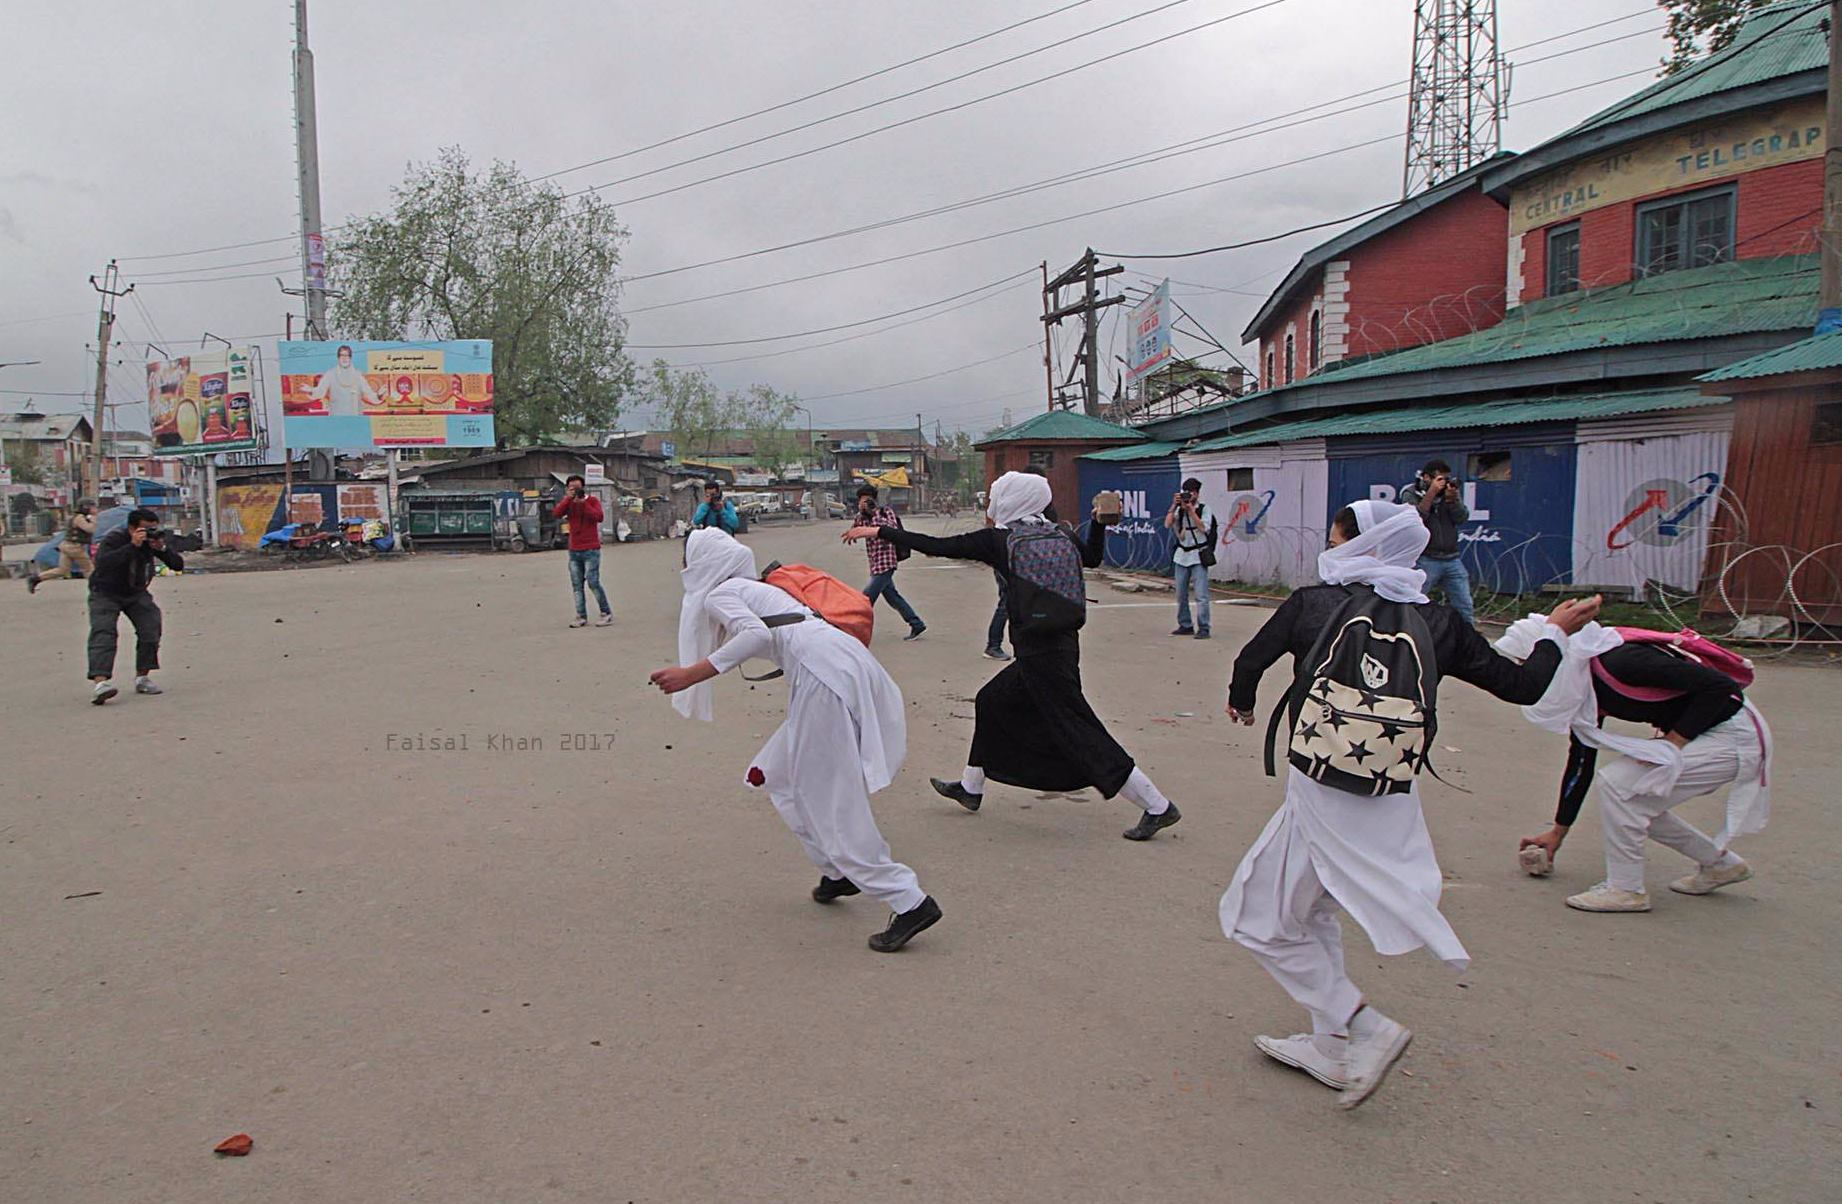 Many female students resorted to stone throwing during clashes in Srinagar the summer capital of Indian controlled Kashmir on April 24, 2017